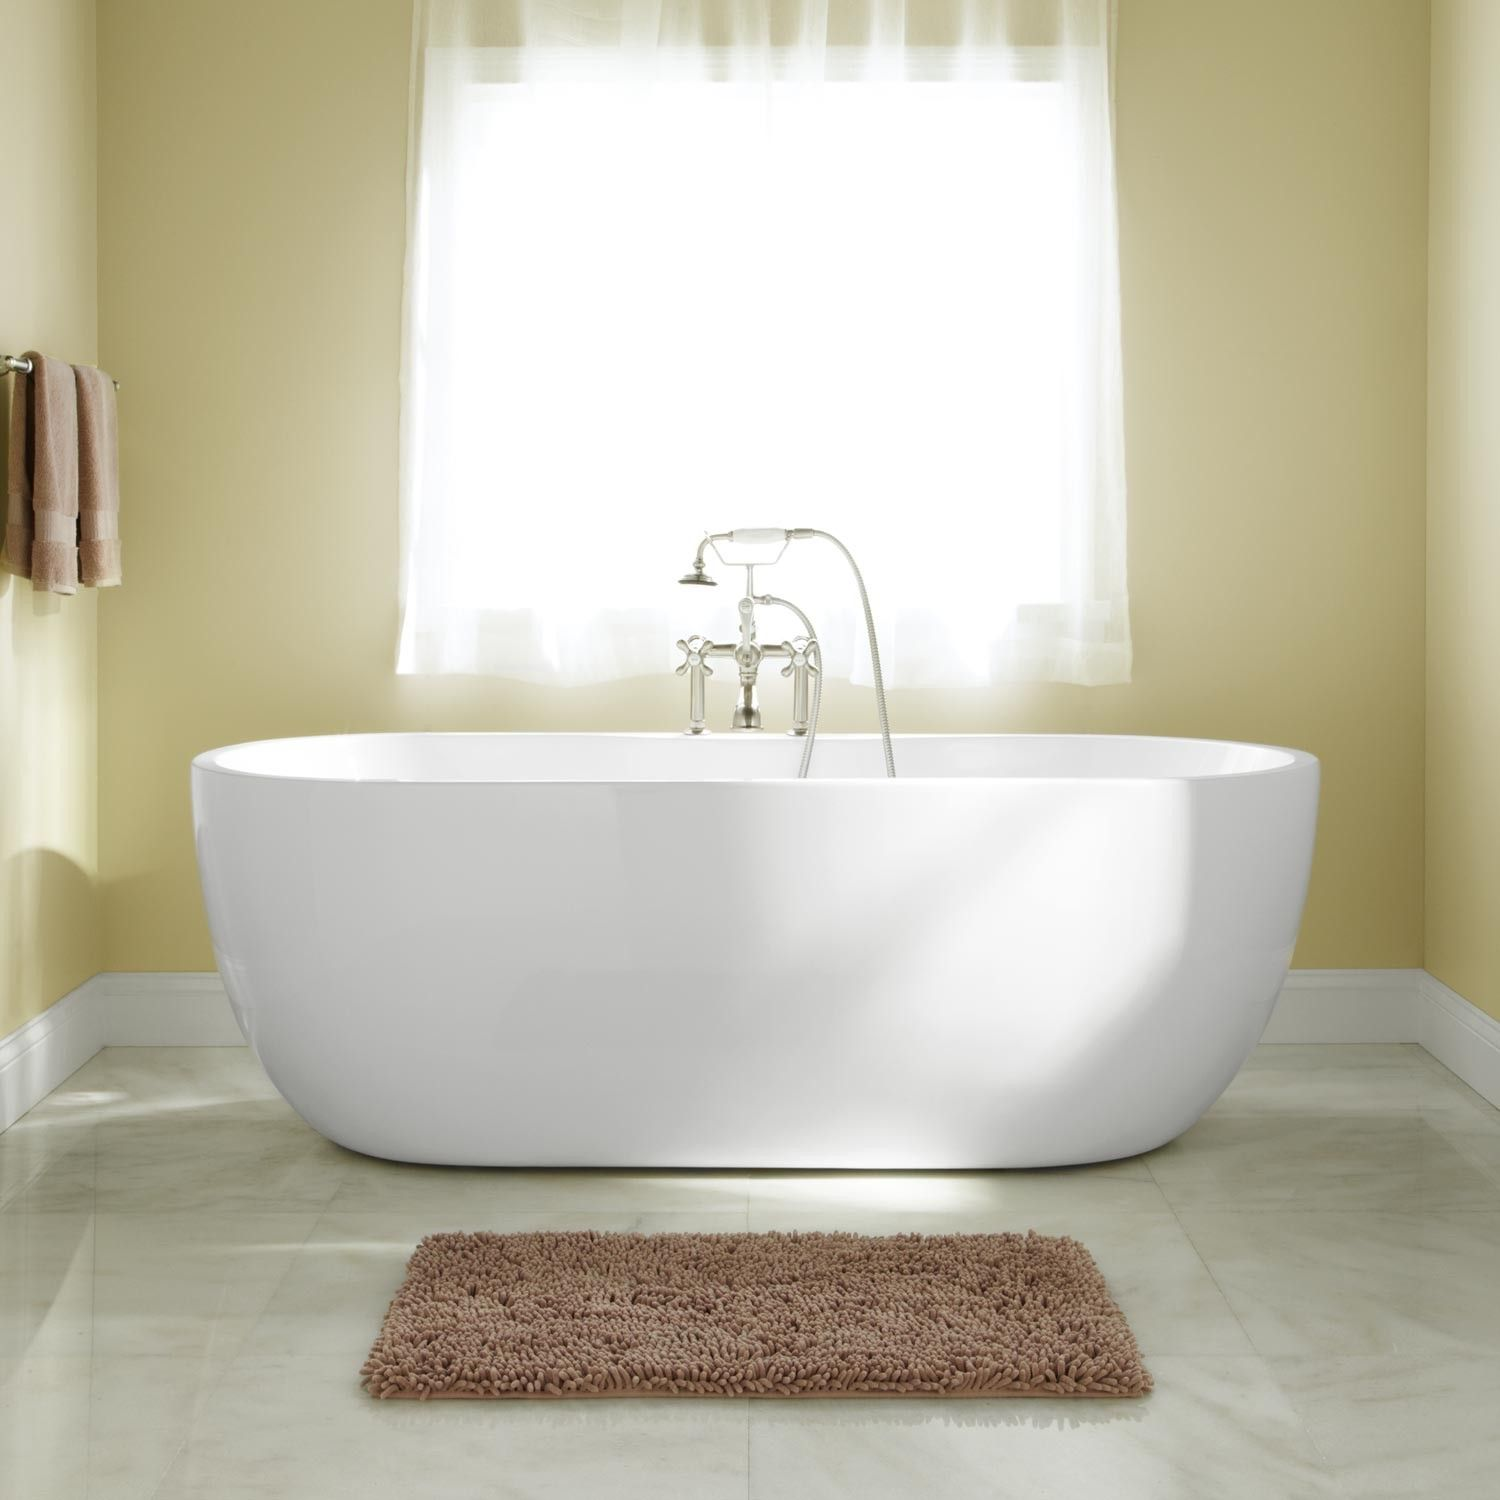 Boyce Acrylic Tub - Bathtubs - Bathroom- 56\